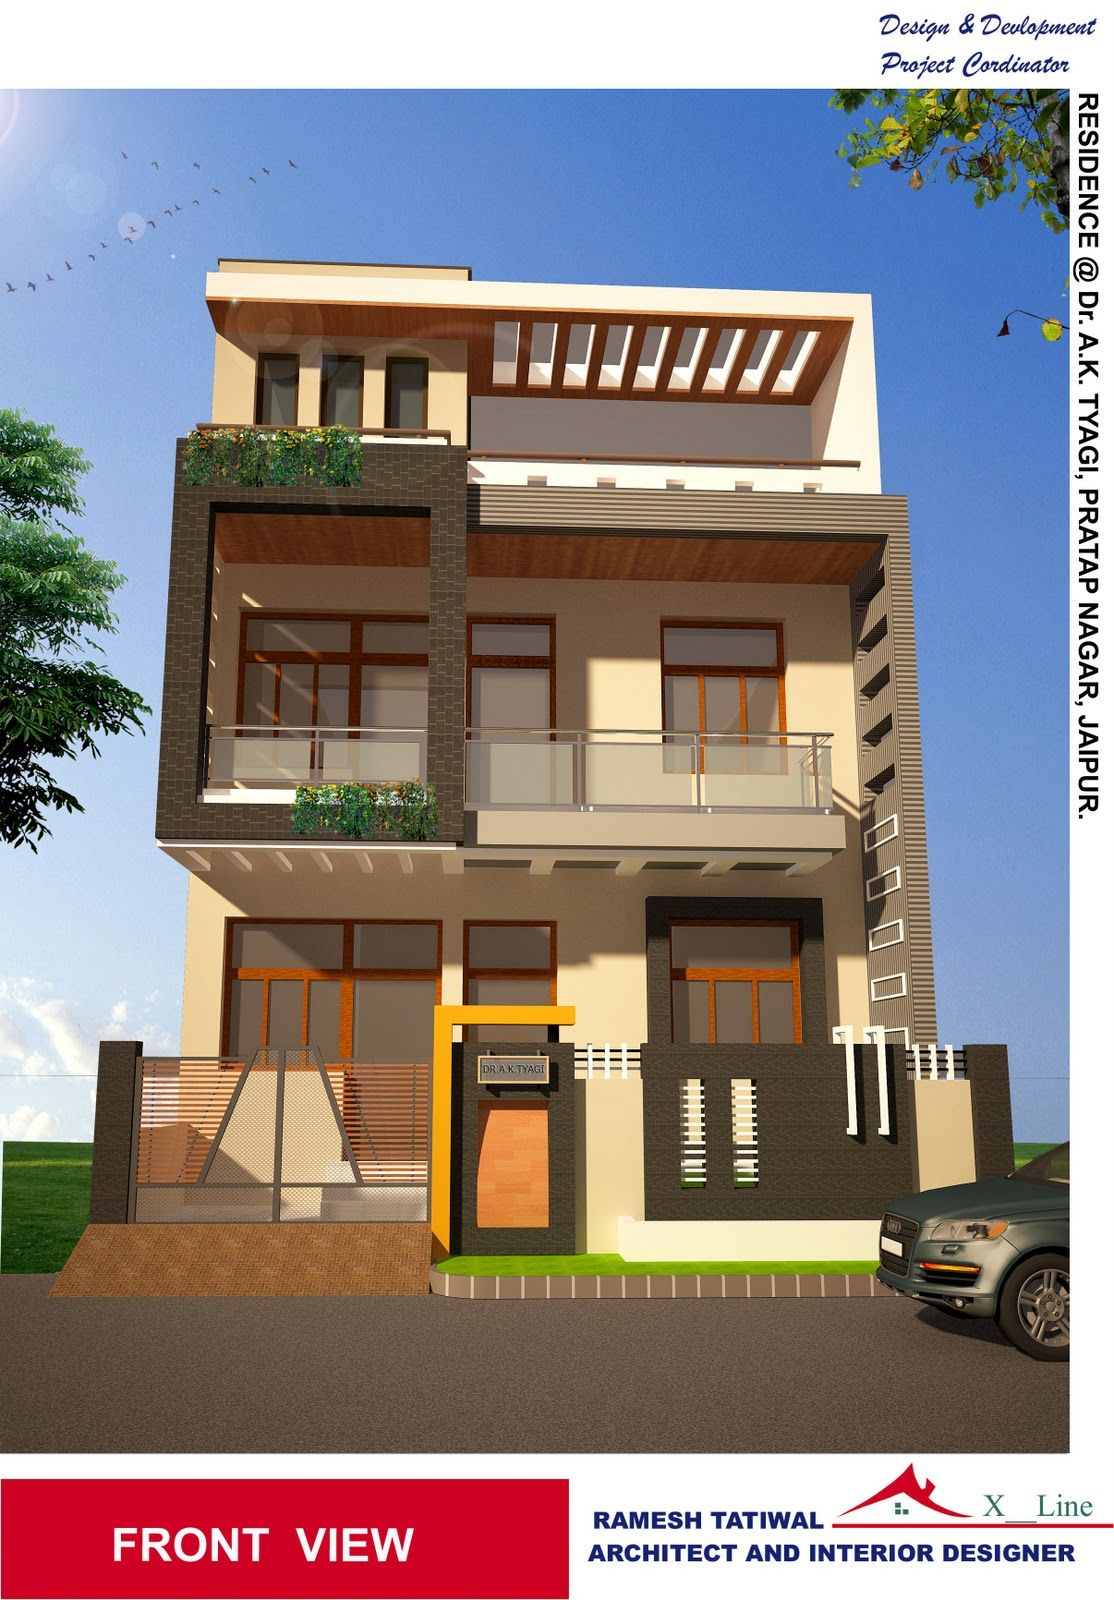 Housedesigns modern indian home architecture design from for Best indian architectural affordable home designs